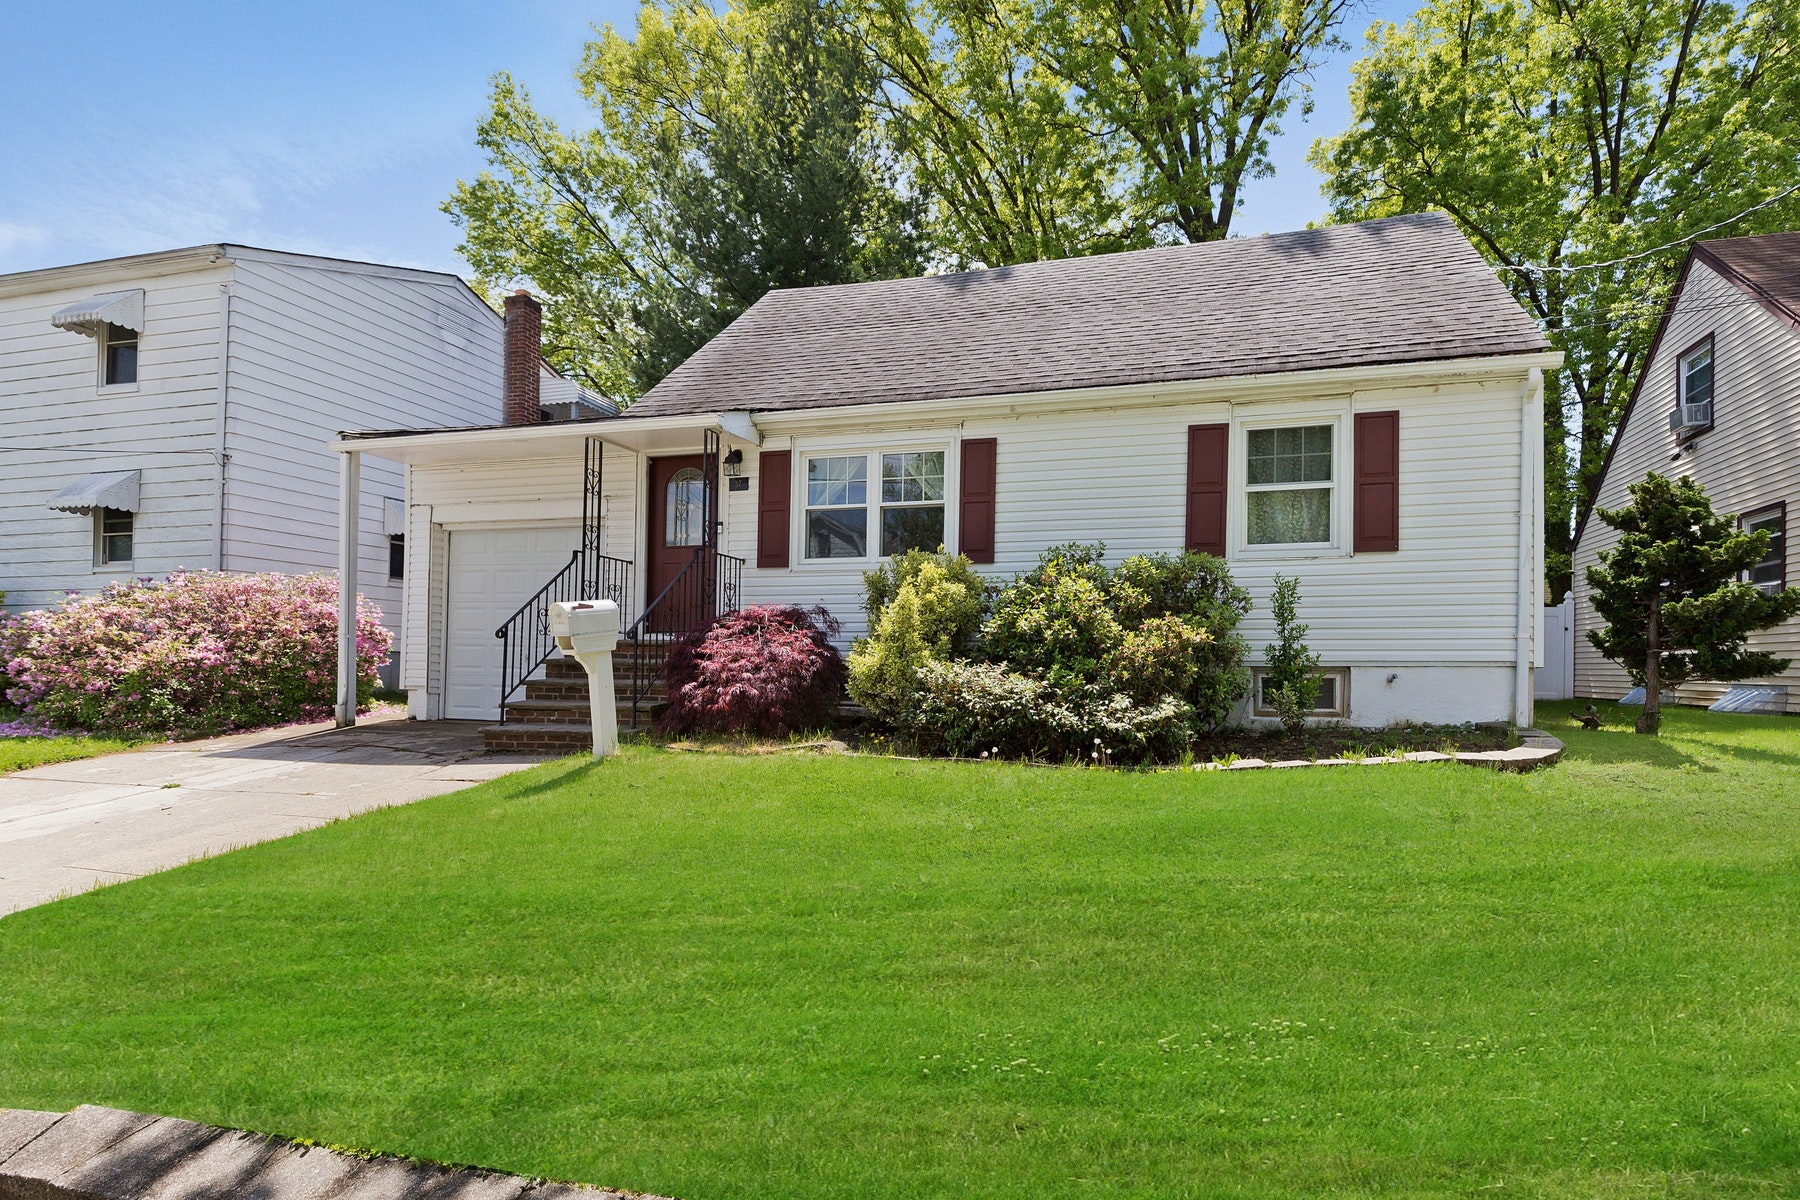 Single Family Homes for Sale at Charming Cape in a Great Location 37 Willry Street Woodbridge, New Jersey 07095 United States